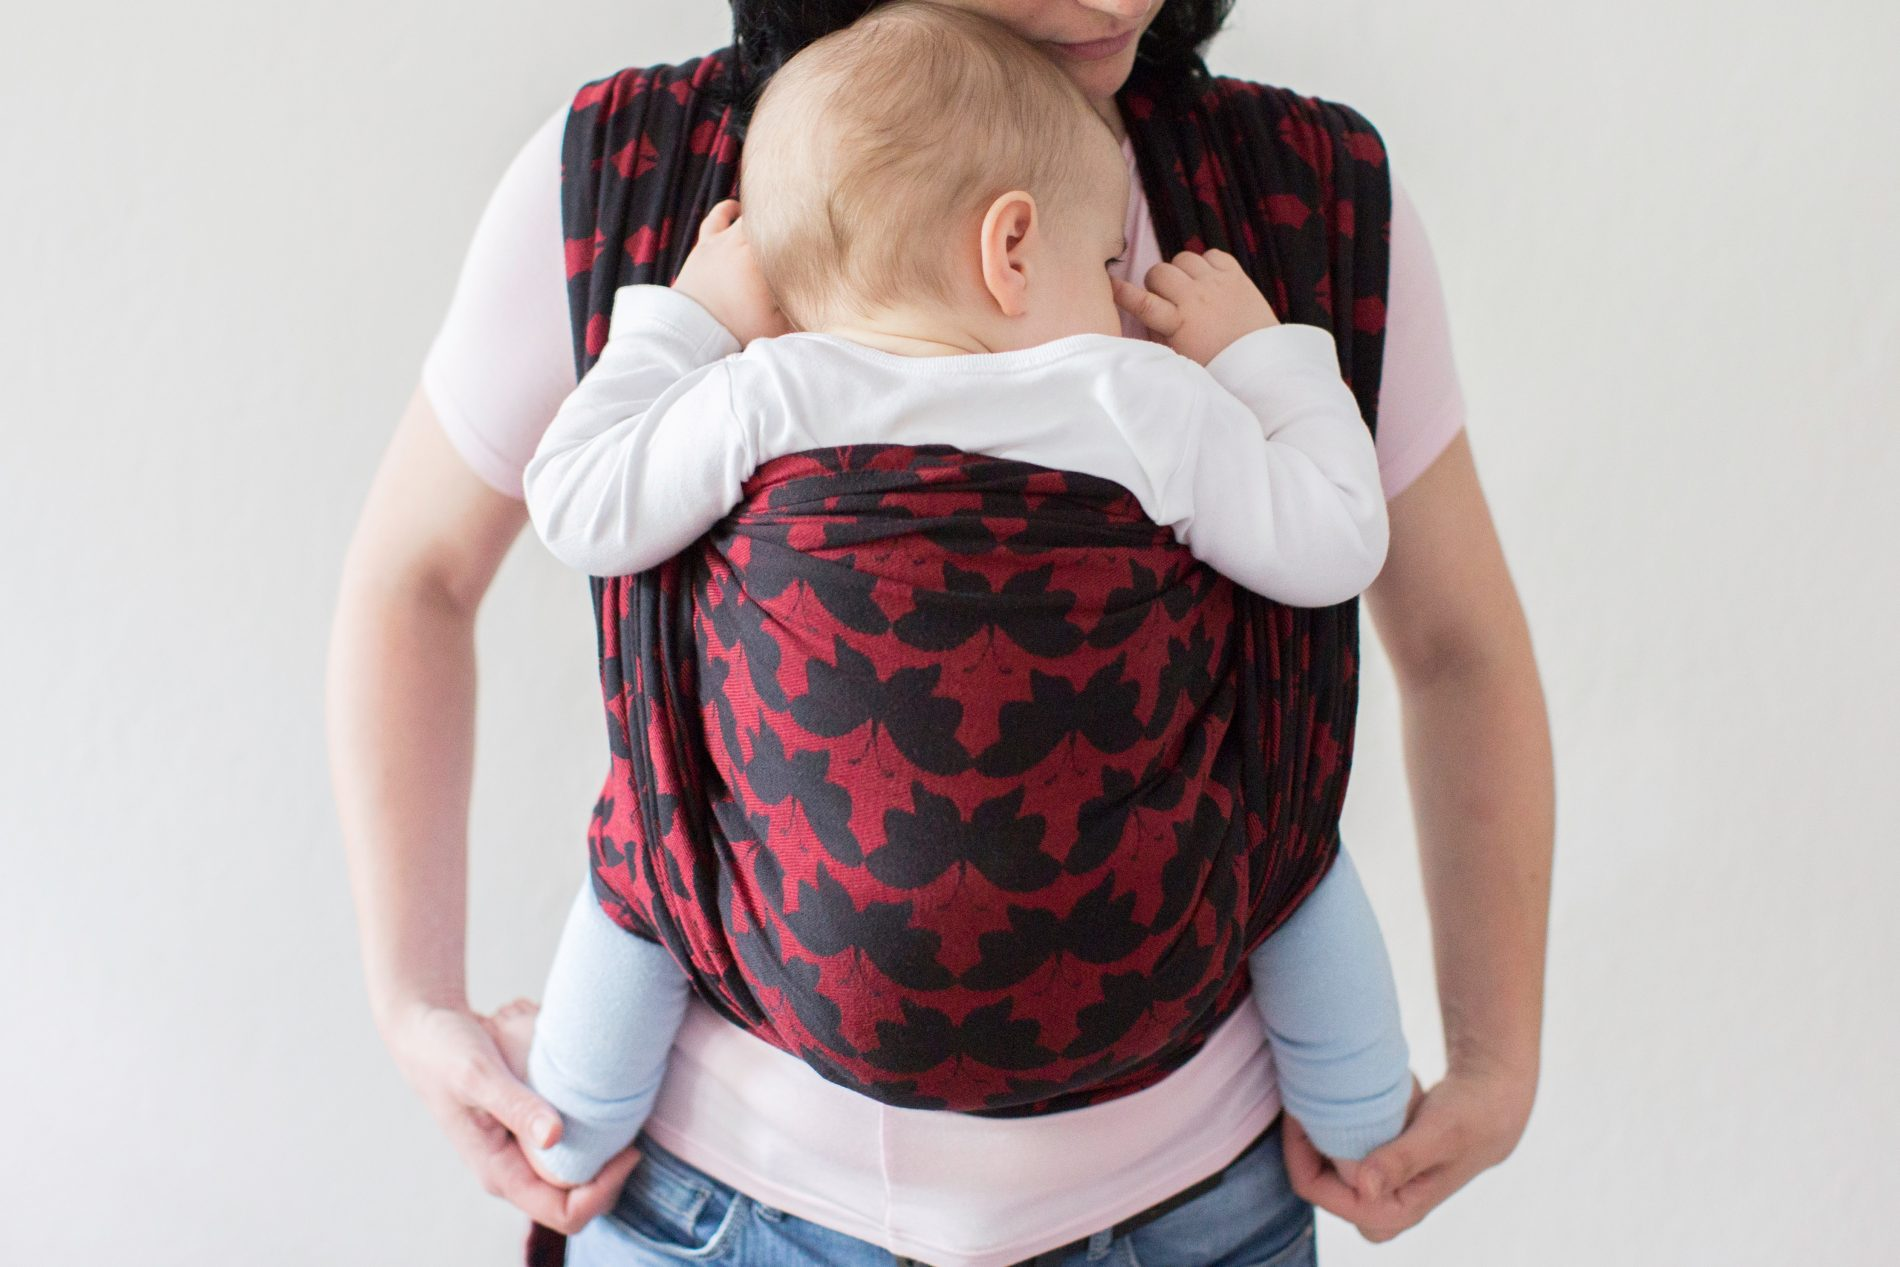 EVERYTHING YOU NEED TO KNOW ABOUT SAFE  BABYWEARING